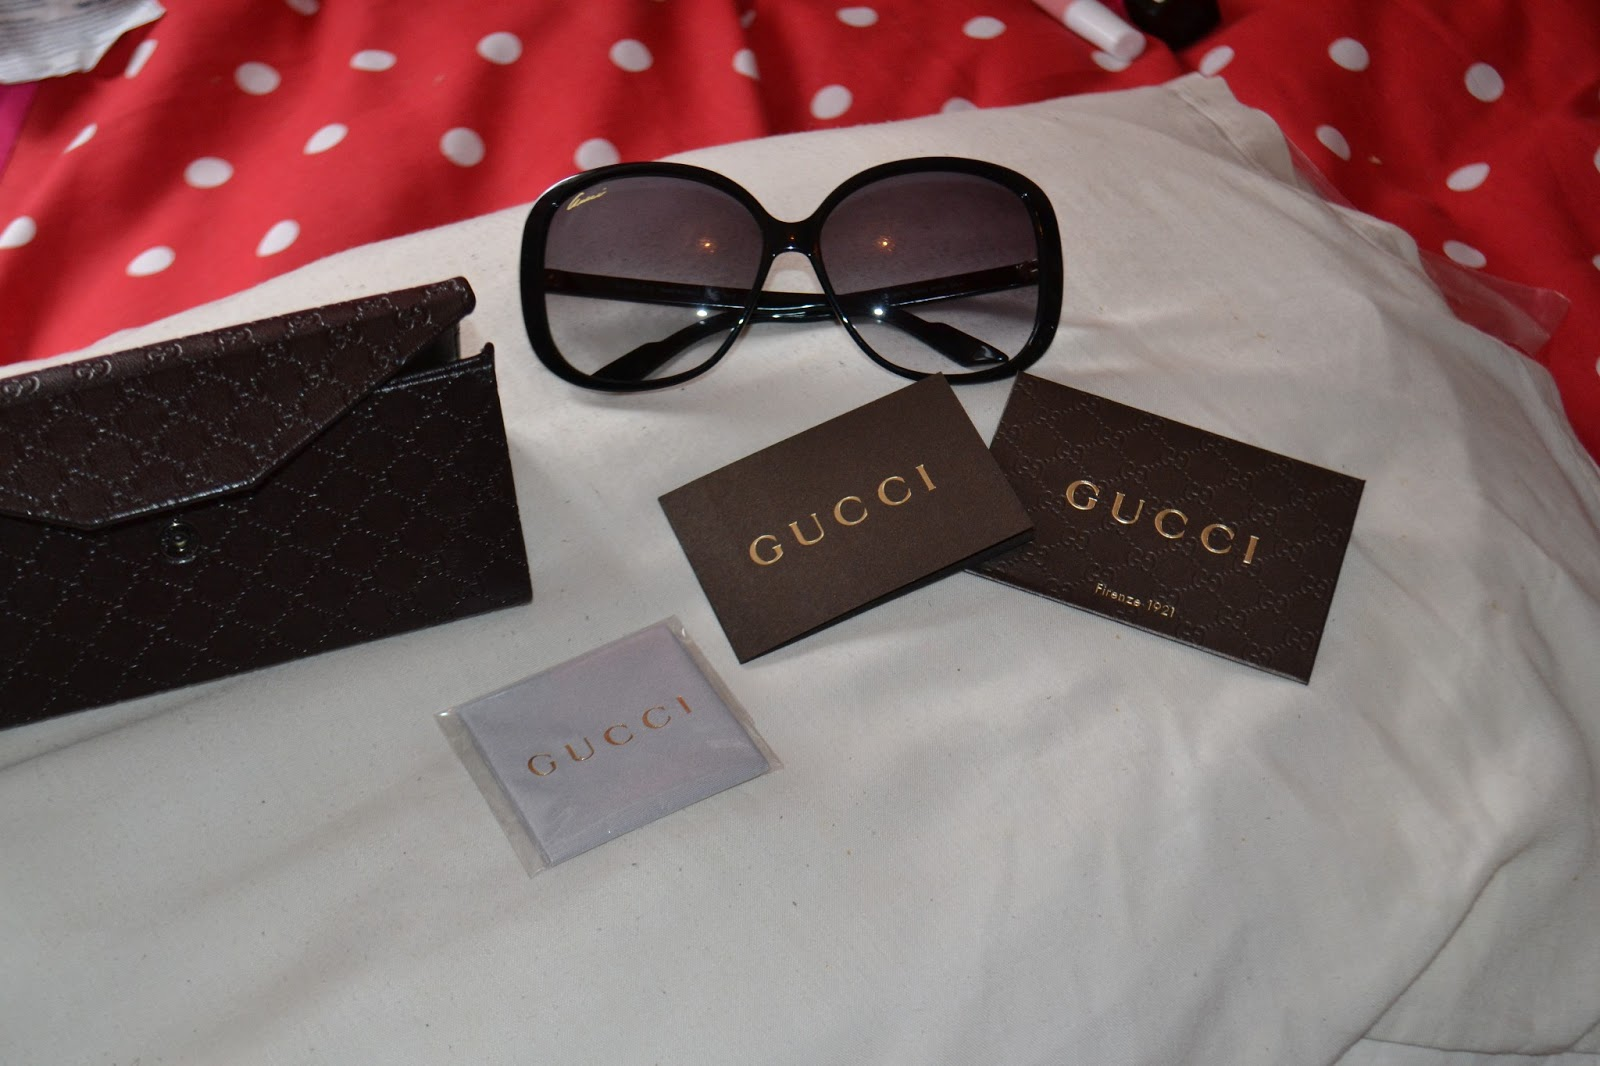 dcb45886cb00e Forevermissvanity - A UK Lifestyle Blogger   Hey there Gucci Girl